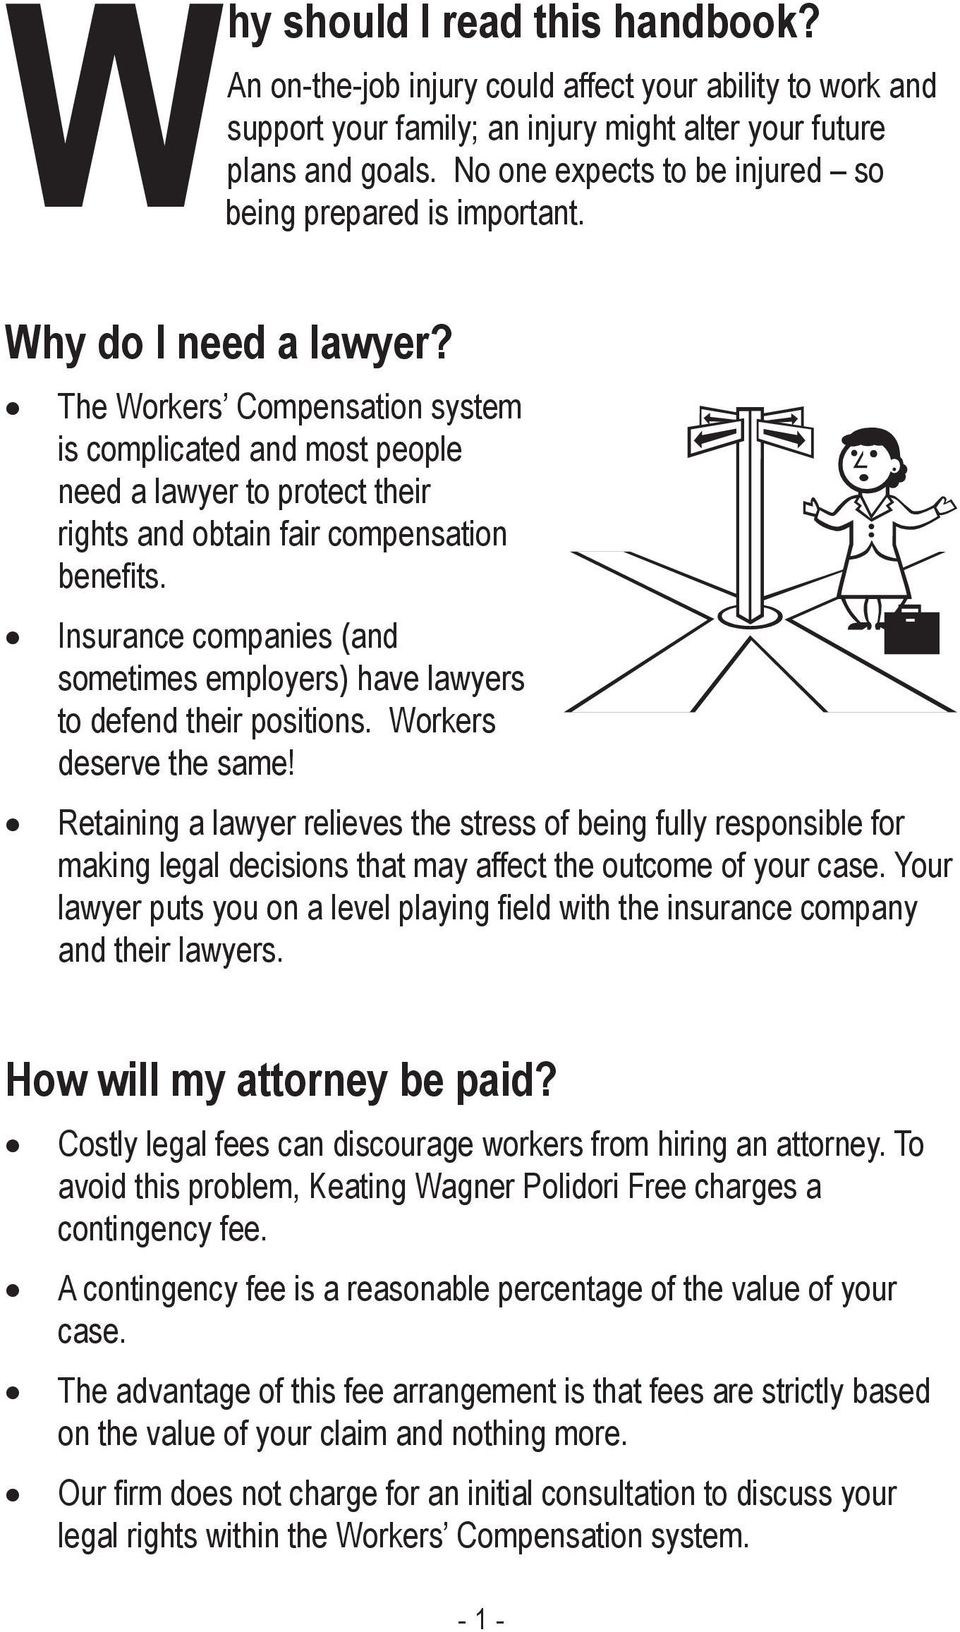 The Workers Compensation system is complicated and most people need a lawyer to protect their rights and obtain fair compensation bene ts.